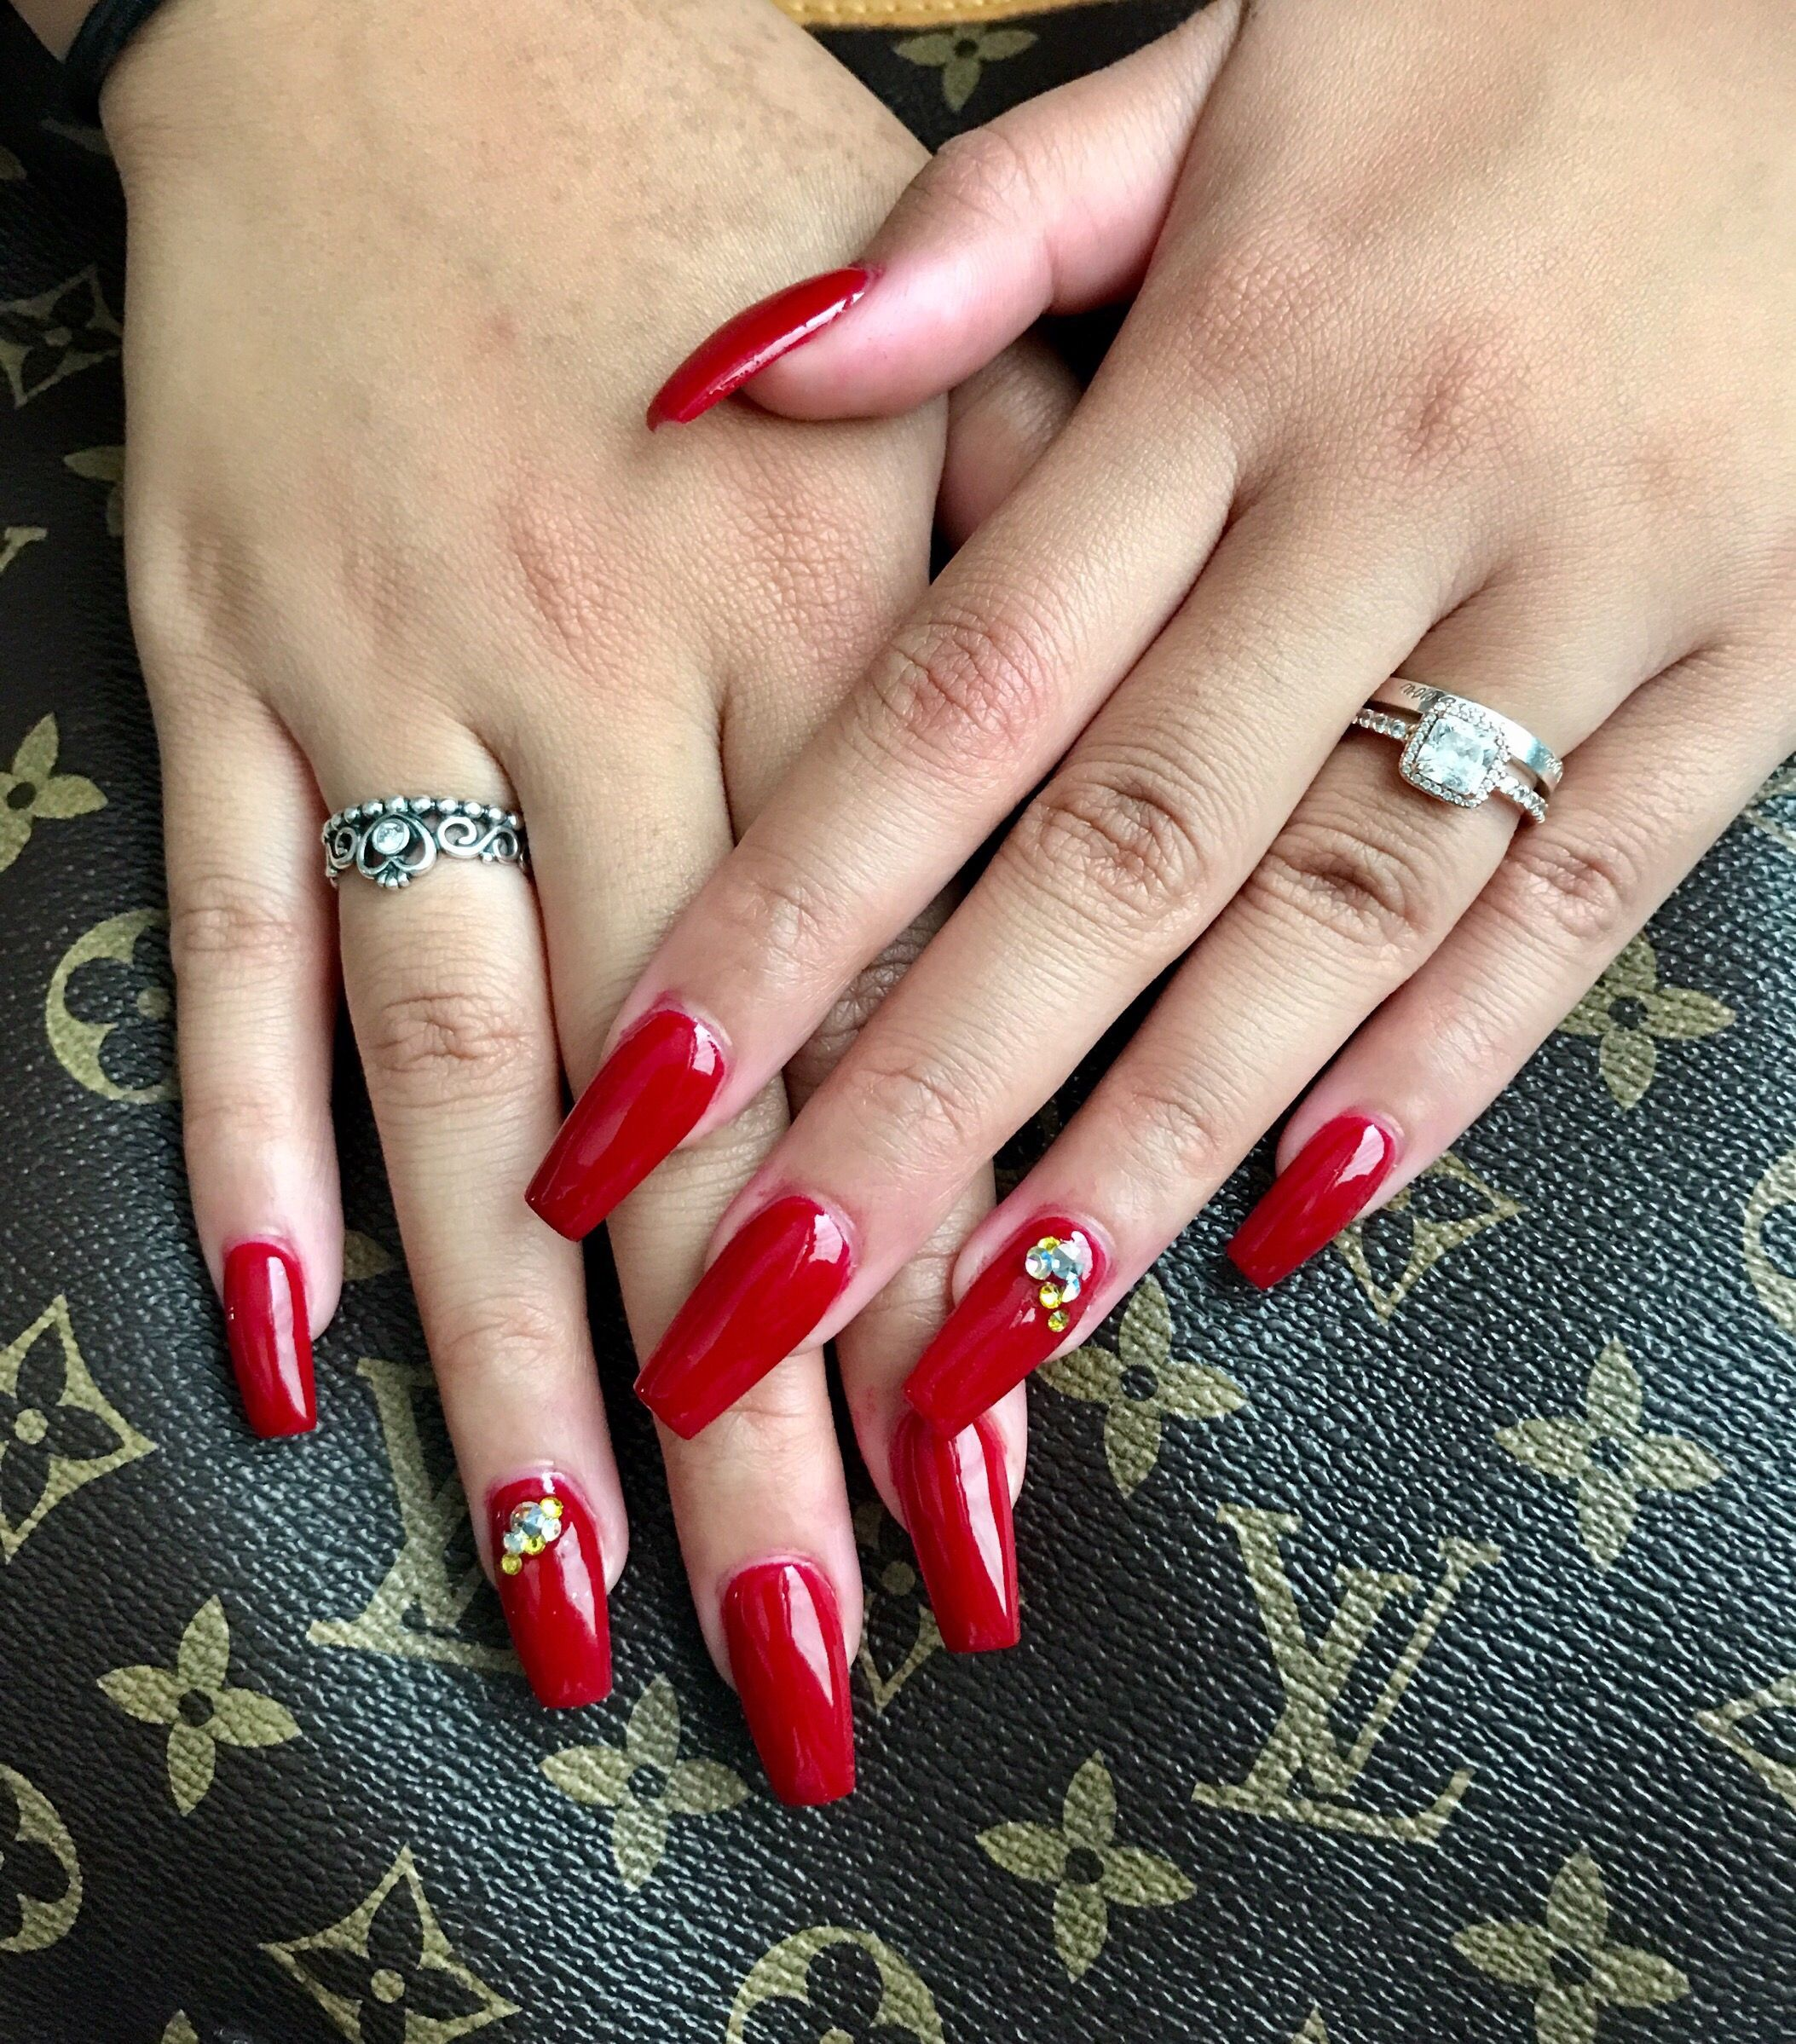 Simple Red Coffin Shaped Nails Powdered Acrylics With Swarovski Crystals Coffin Shape Nails My Nails Nails